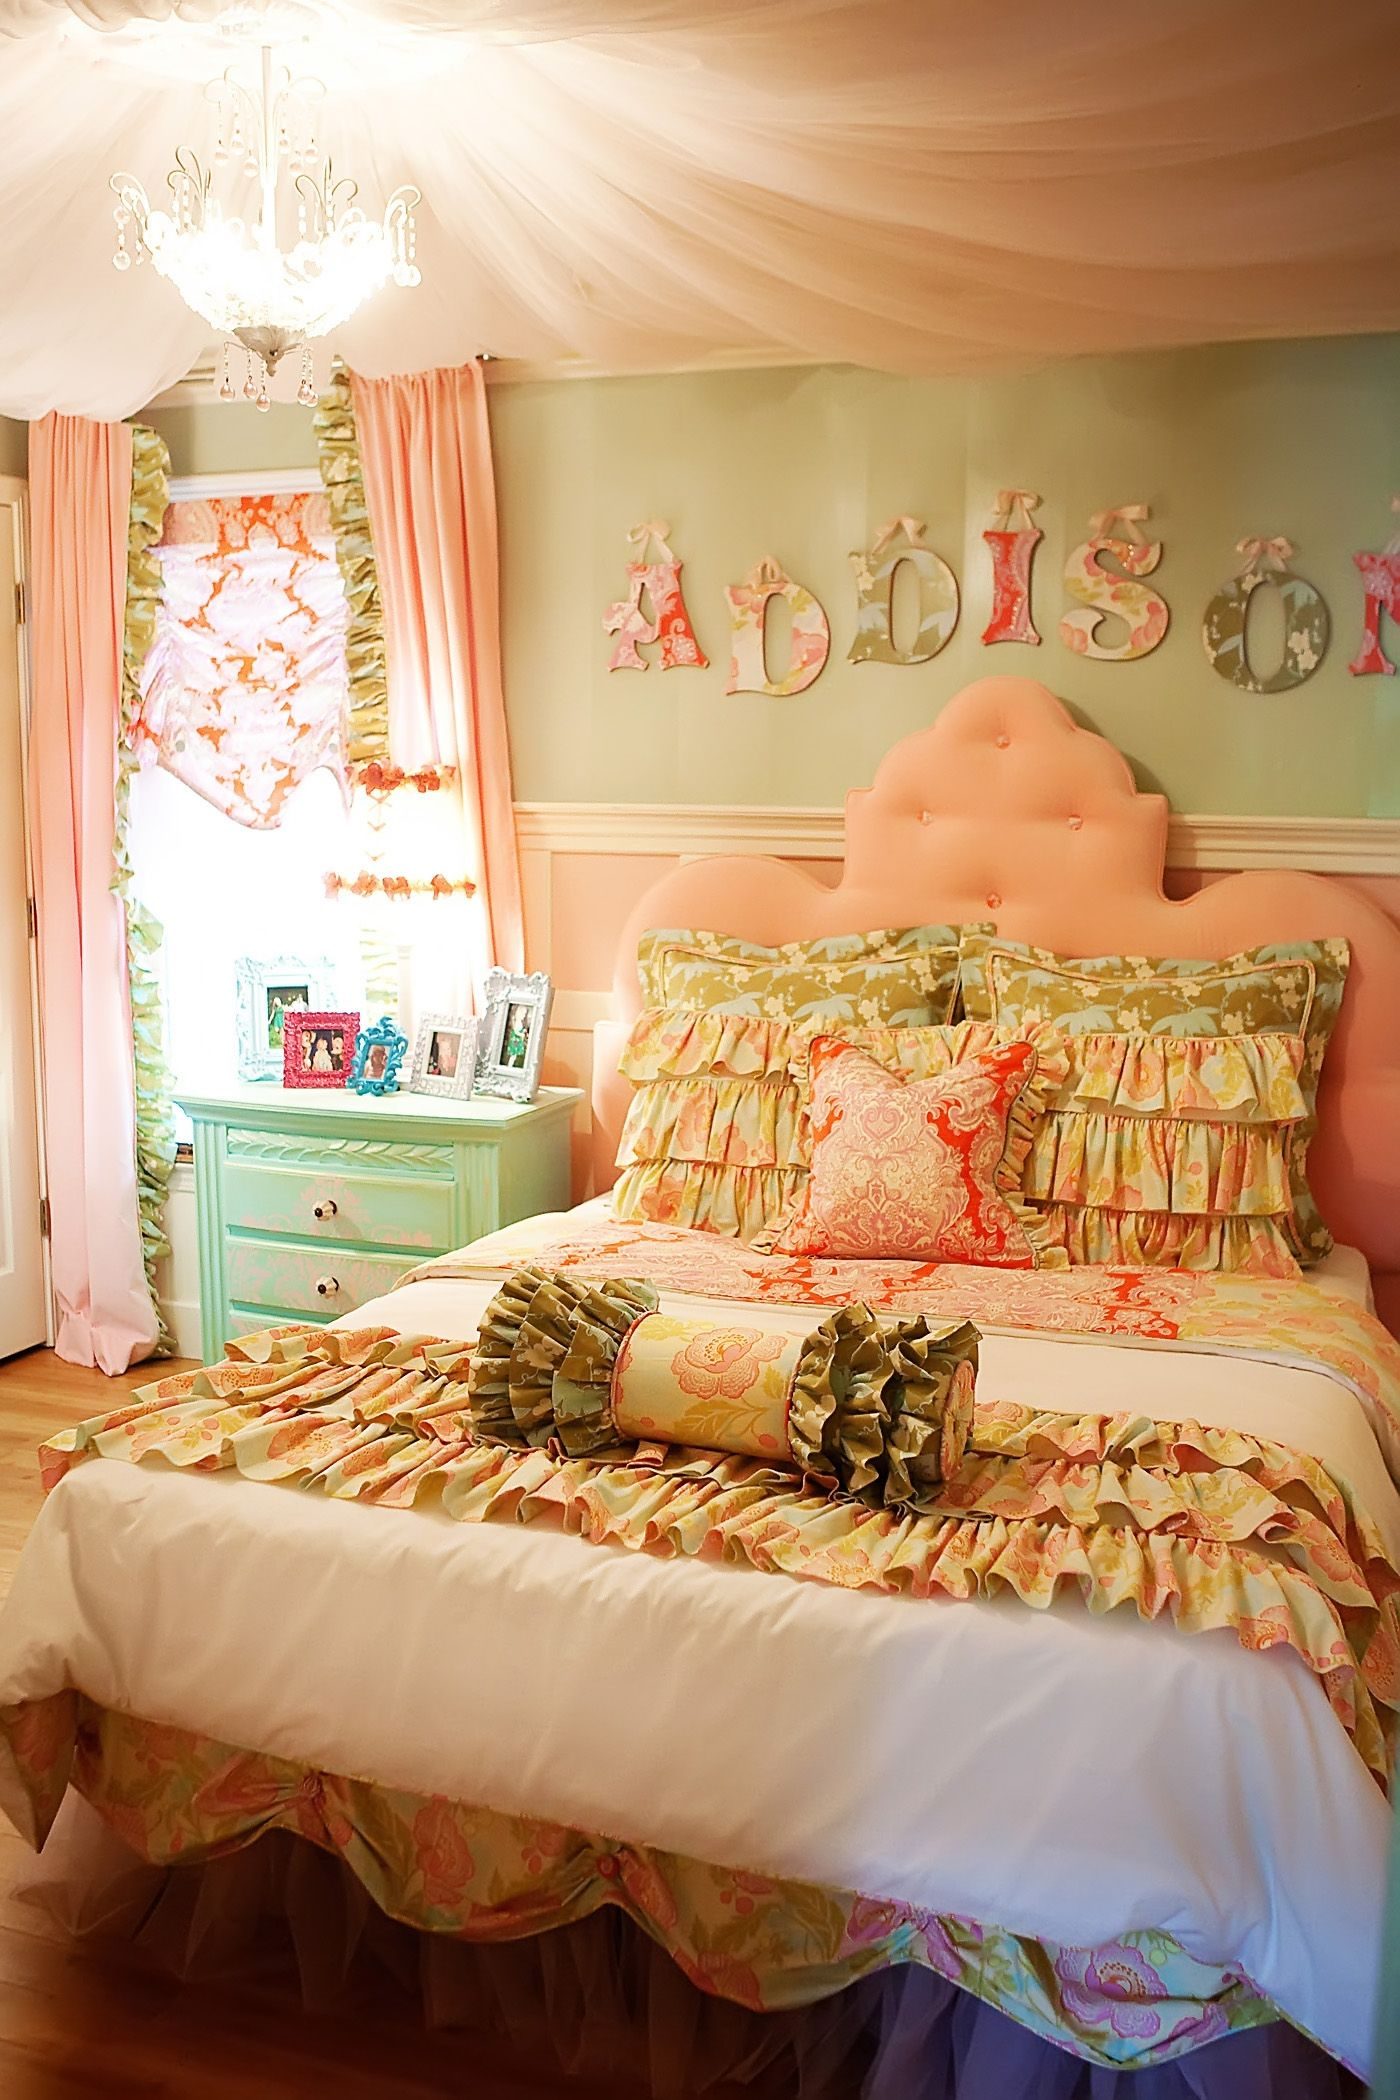 Bedroom ceiling drapes - My Daughter Addison S Bedroom Whimsical Pink Velvet Tufted Headboard Pink Tulle Ceiling